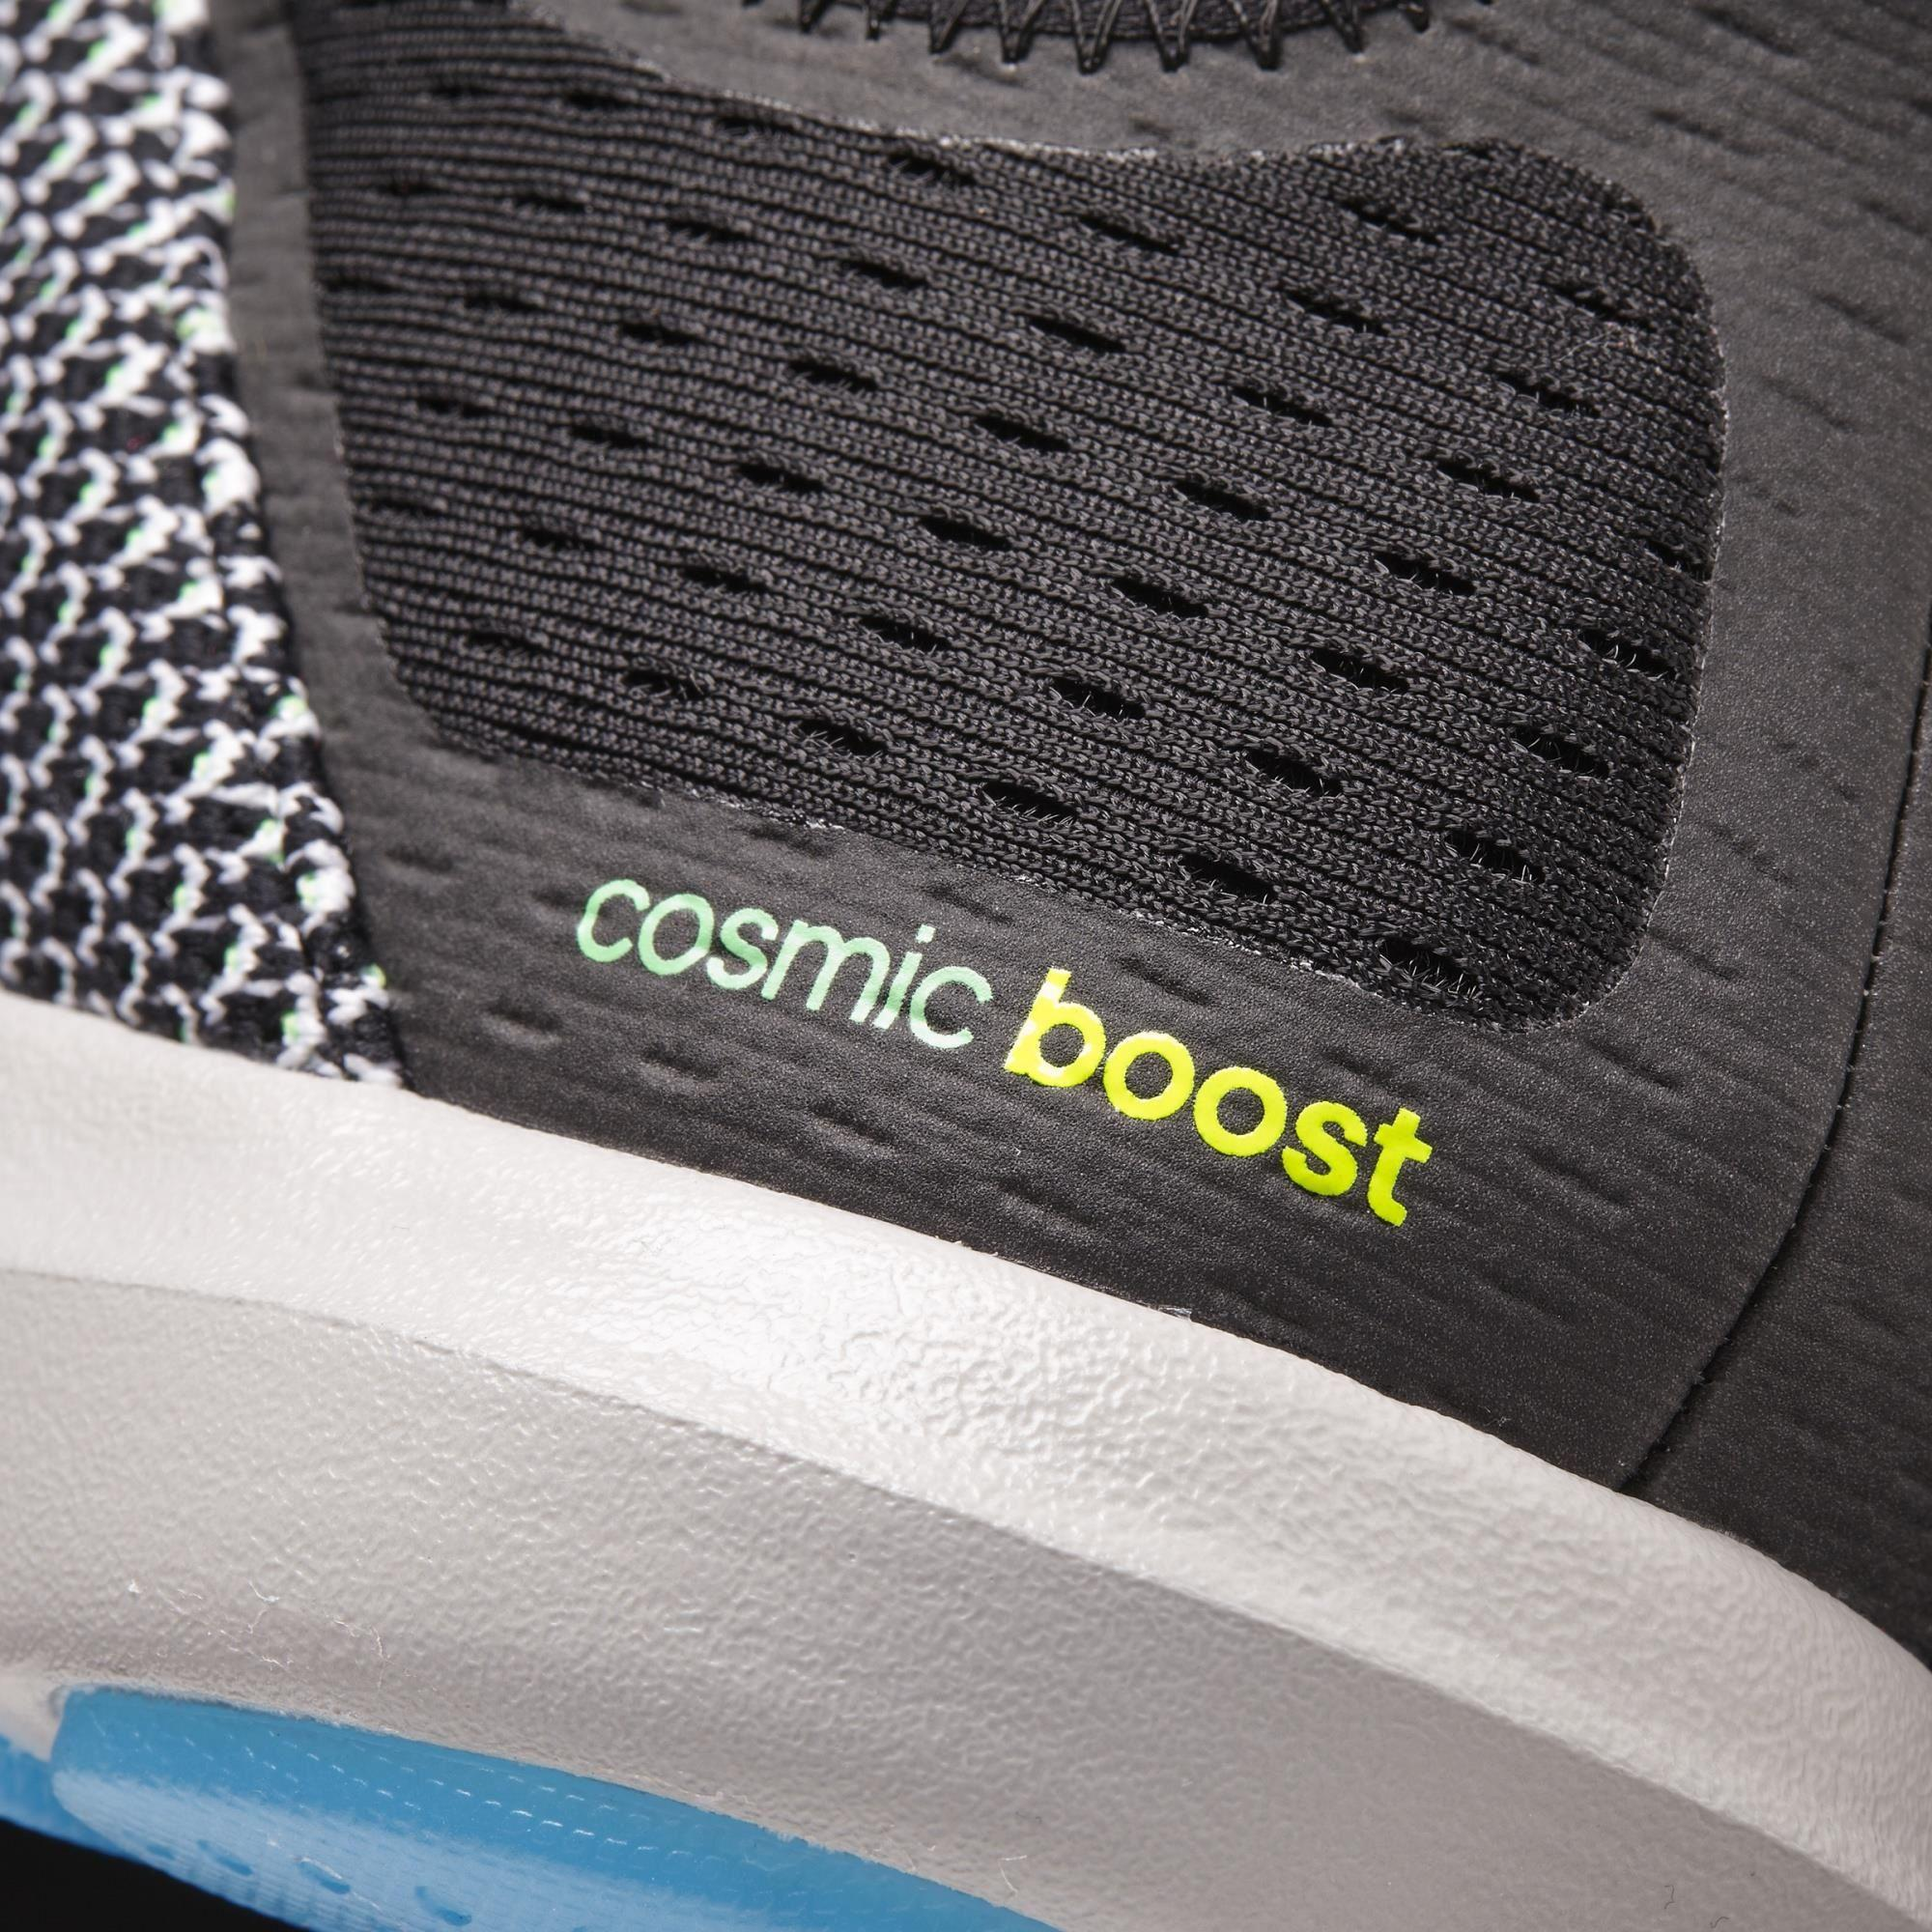 201c6d0a09c8aa Adidas Mens Climachill Cosmic Boost Running Shoes - Black Blue ...